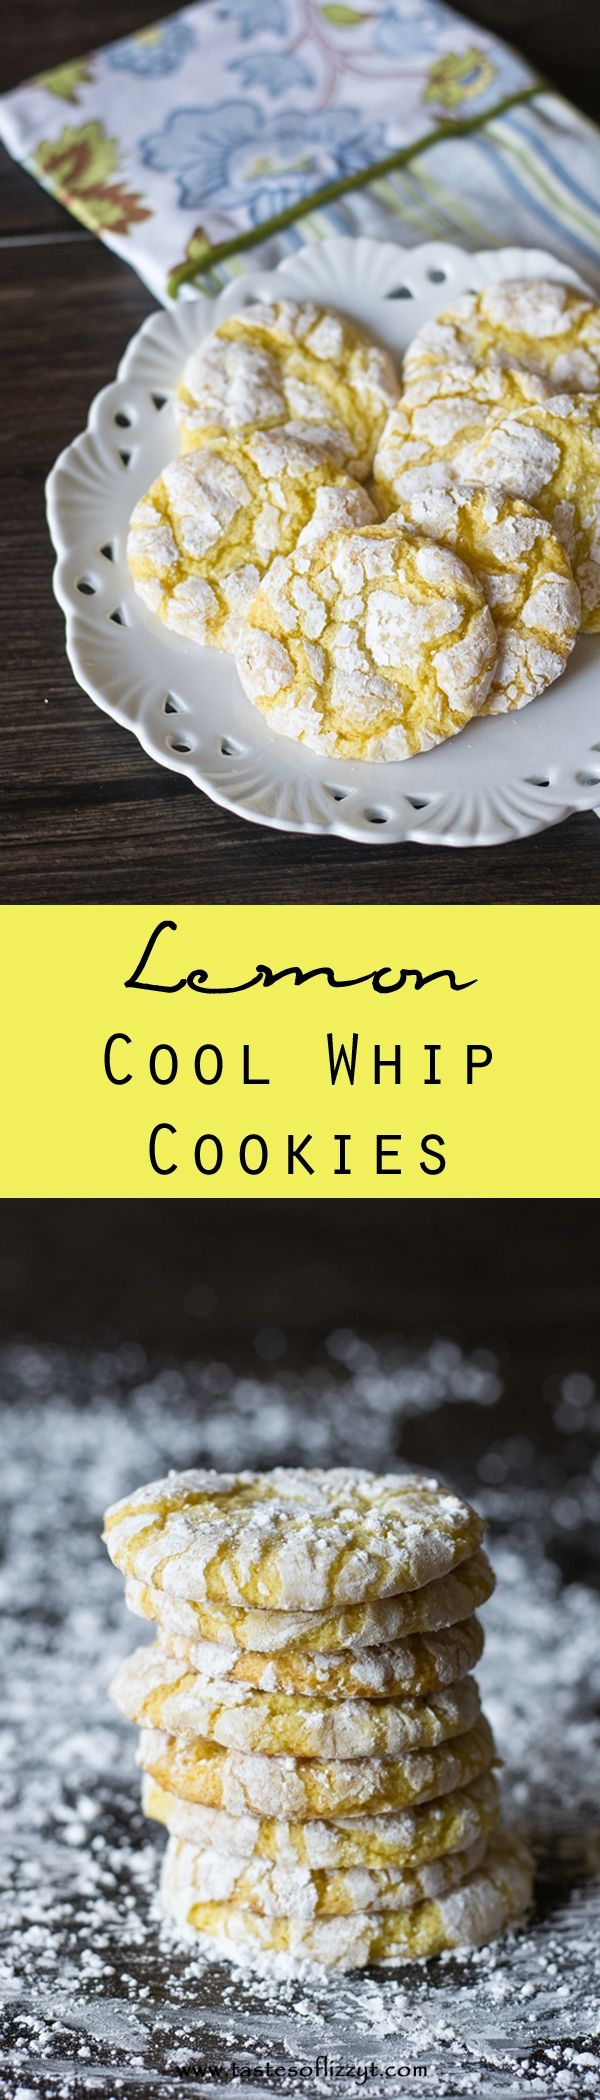 Lemon Cool Whip Cookies. 4 ingredients make up these delightfully simple Lemon Cool Whip Cookies. Make these cookies to fit any occasion by switching the flavor of cake mix!